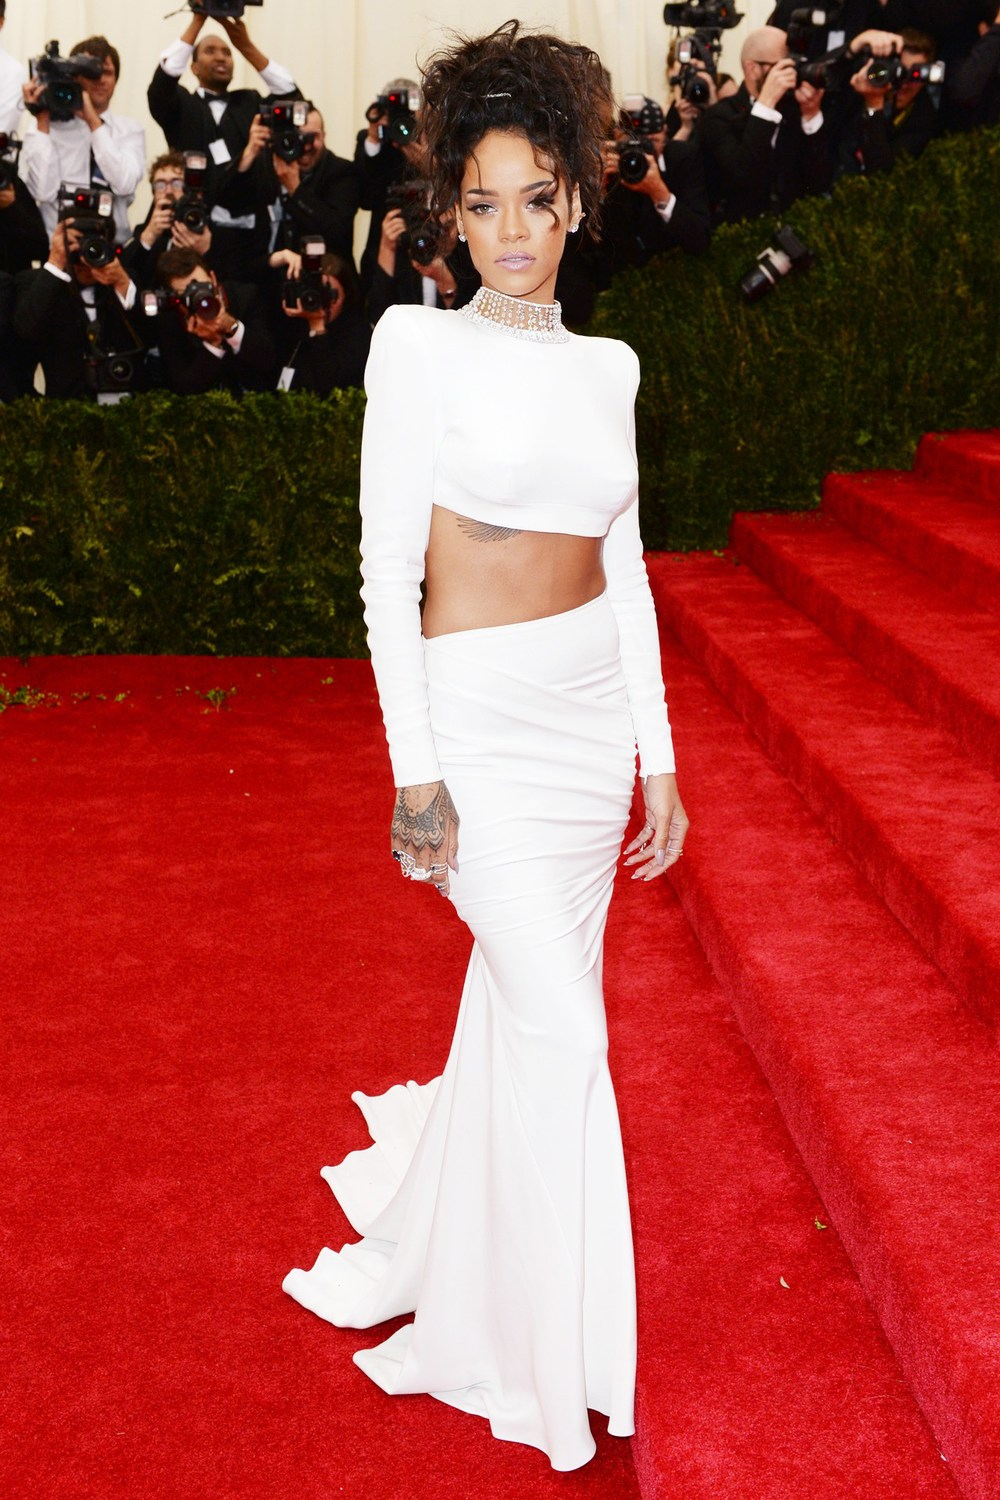 Rihanna wore a custom-made top and skirt by Stella McCartney.